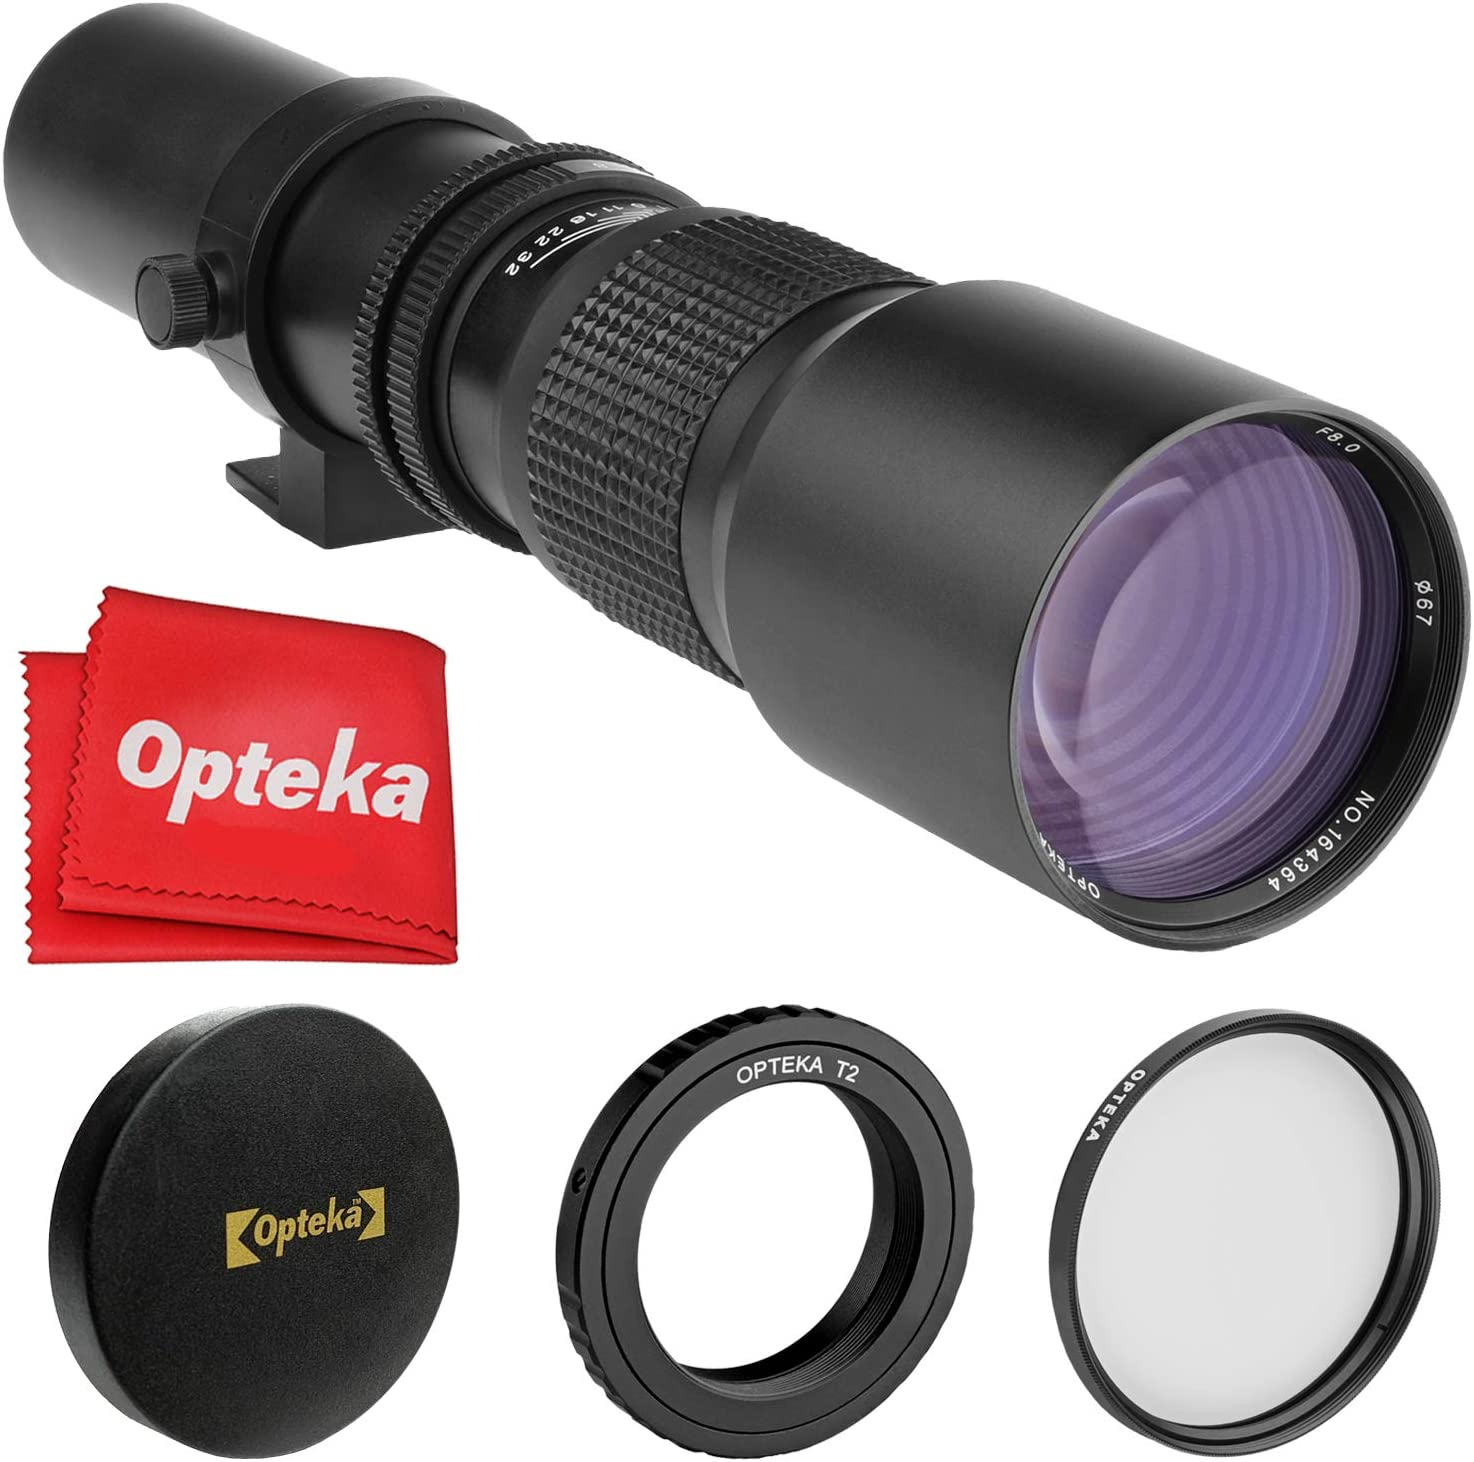 Opteka 500mm f/8 Telephoto Lens for Sony a9, a7R, a7S, a7, a6500, a6300, a6000, a5100, a5000, a3000, NEX-7, NEX-6, NEX-5T, NEX-5N, NEX-5R, 3N and Other E-Mount Digital Mirrorless Cameras